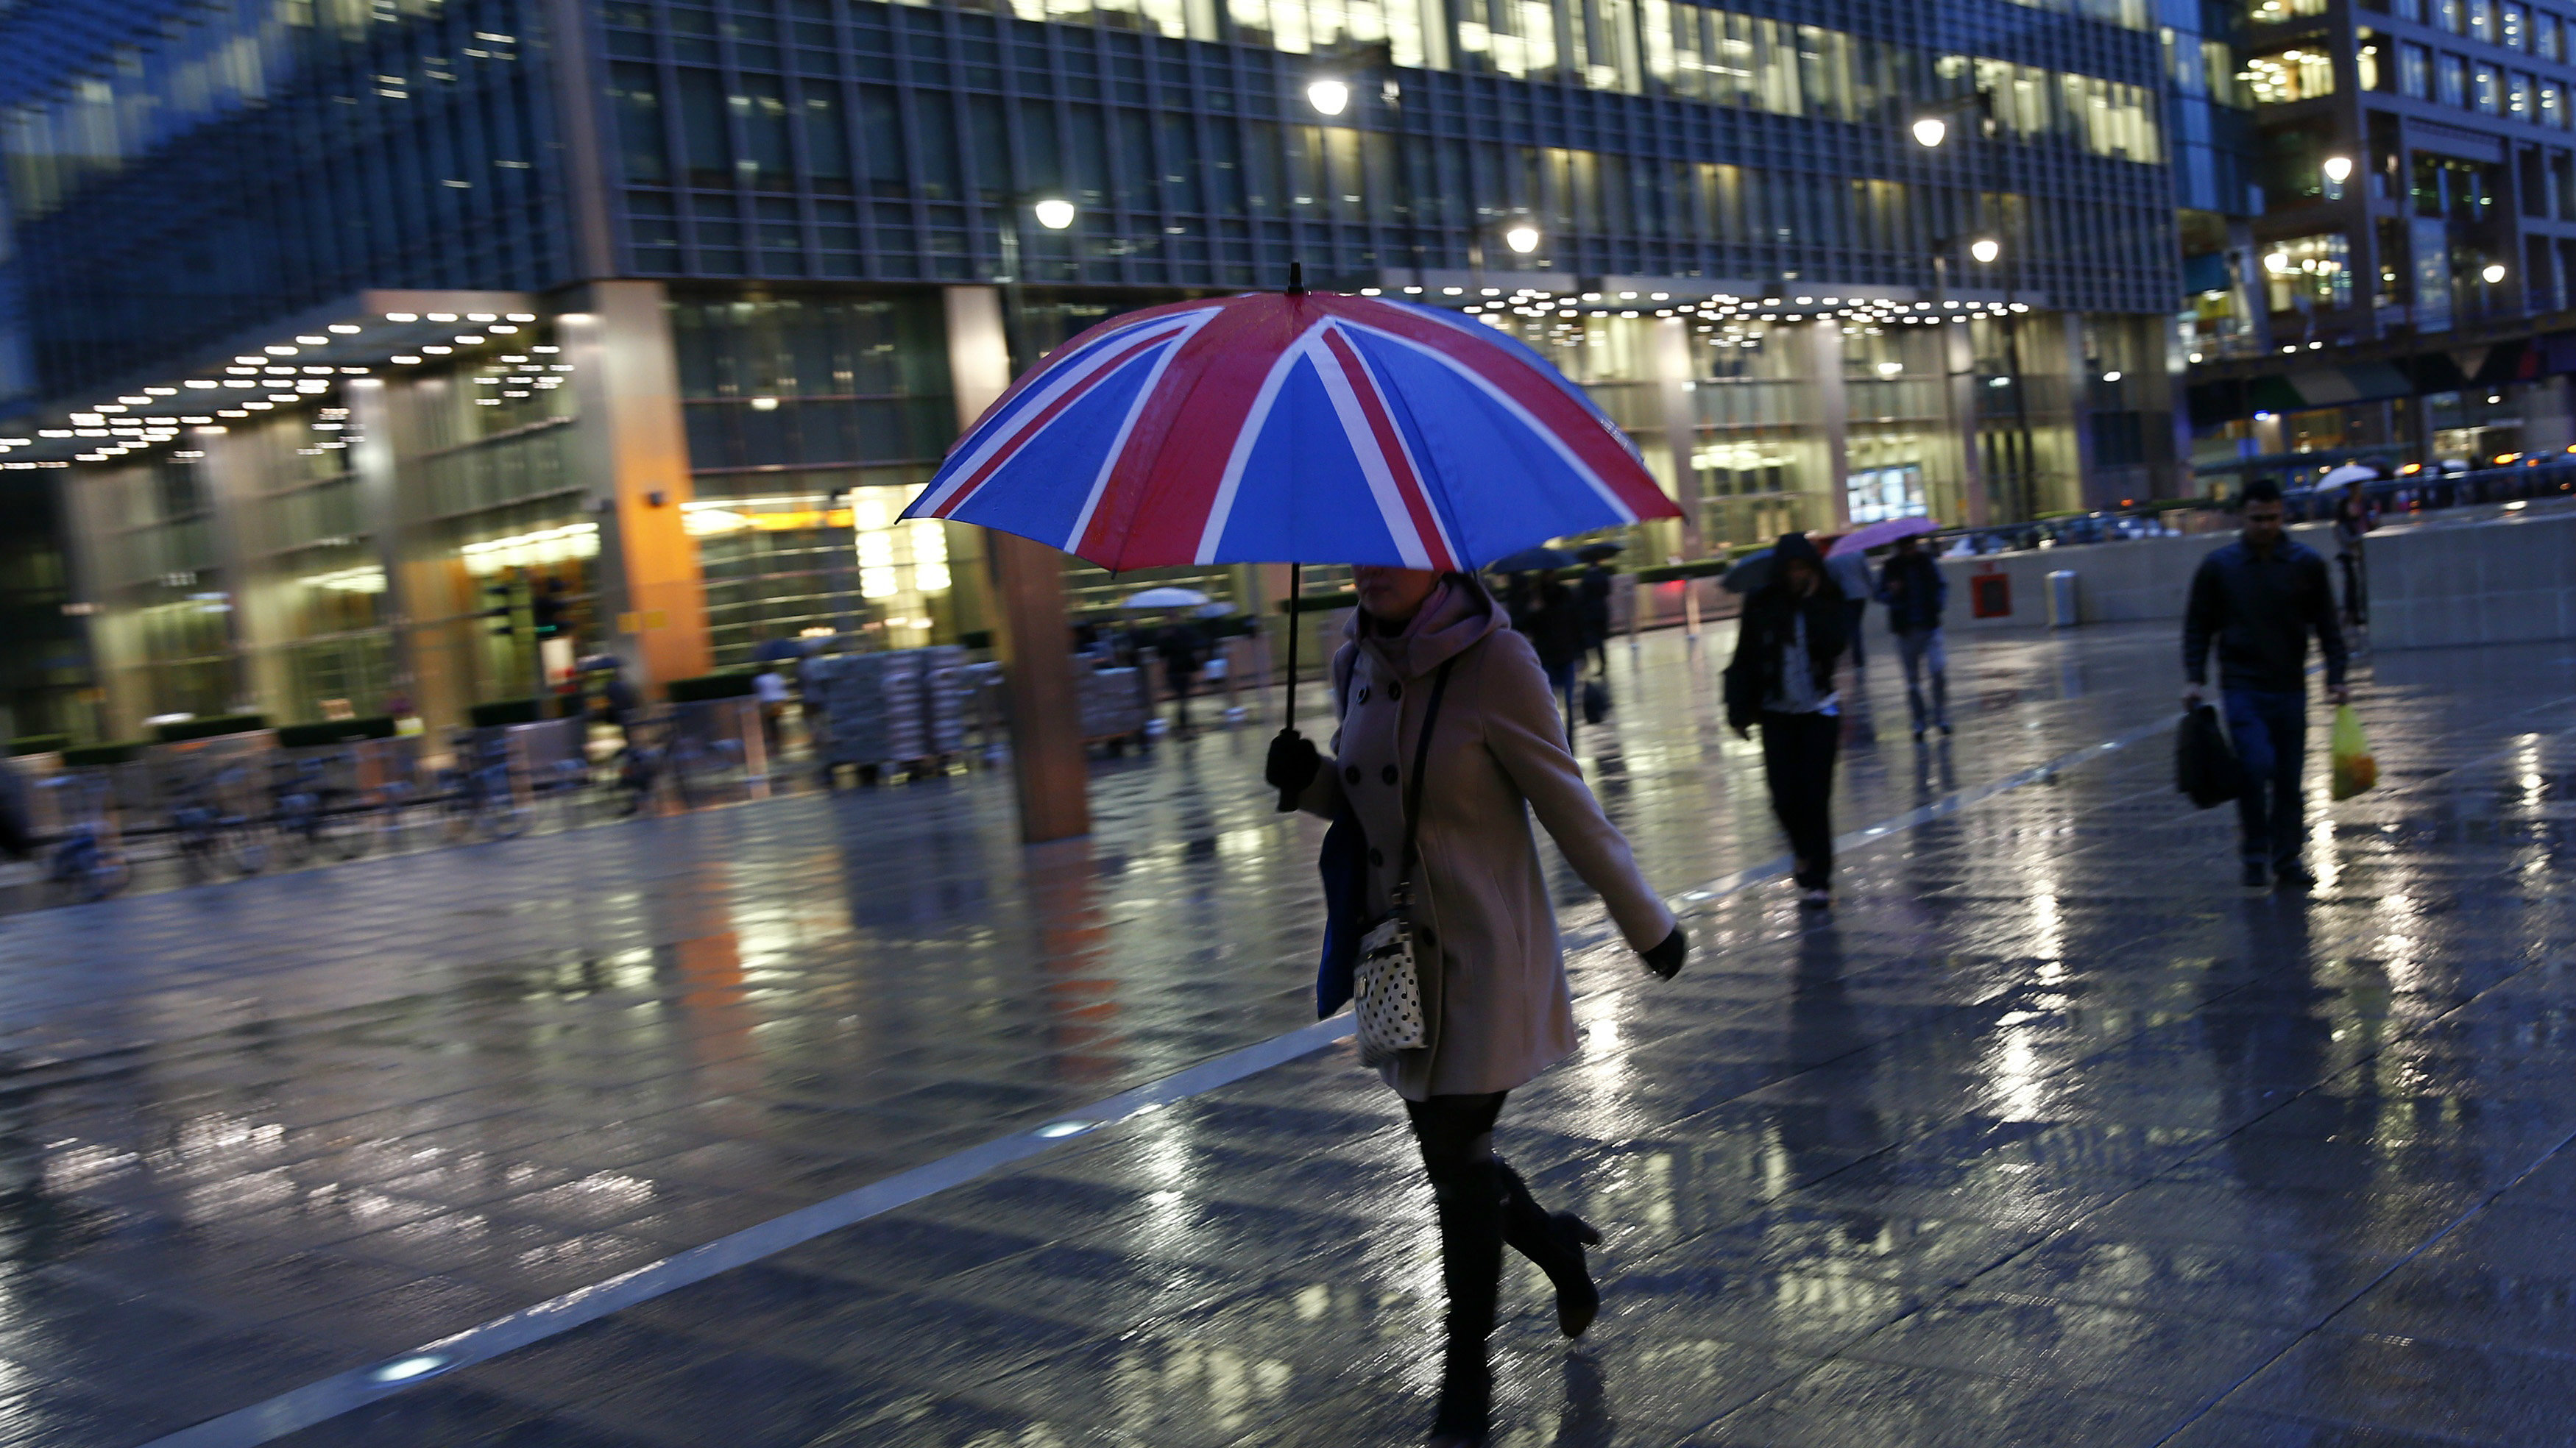 Workers walk in the rain at the Canary Wharf business district in London November 11, 2013. London's financial services sector created 25 percent more jobs in February than a year ago, new data has shown, indicating the industry may be recovering from the restructuring and redundancies prompted by the financial crisis. After a strong January, the City hiring market showed no signs of slowing down last month, with 3,220 new jobs created, compared with 2,575 added in February 2013, according to financial services recruiter Astbury Marsden. The data suggests London's banks and financial services companies are returning to growth after slashing thousands of jobs in the face of a lengthy recession and a series of industry scandals that followed the financial crisis. Picture taken November 11, 2013.